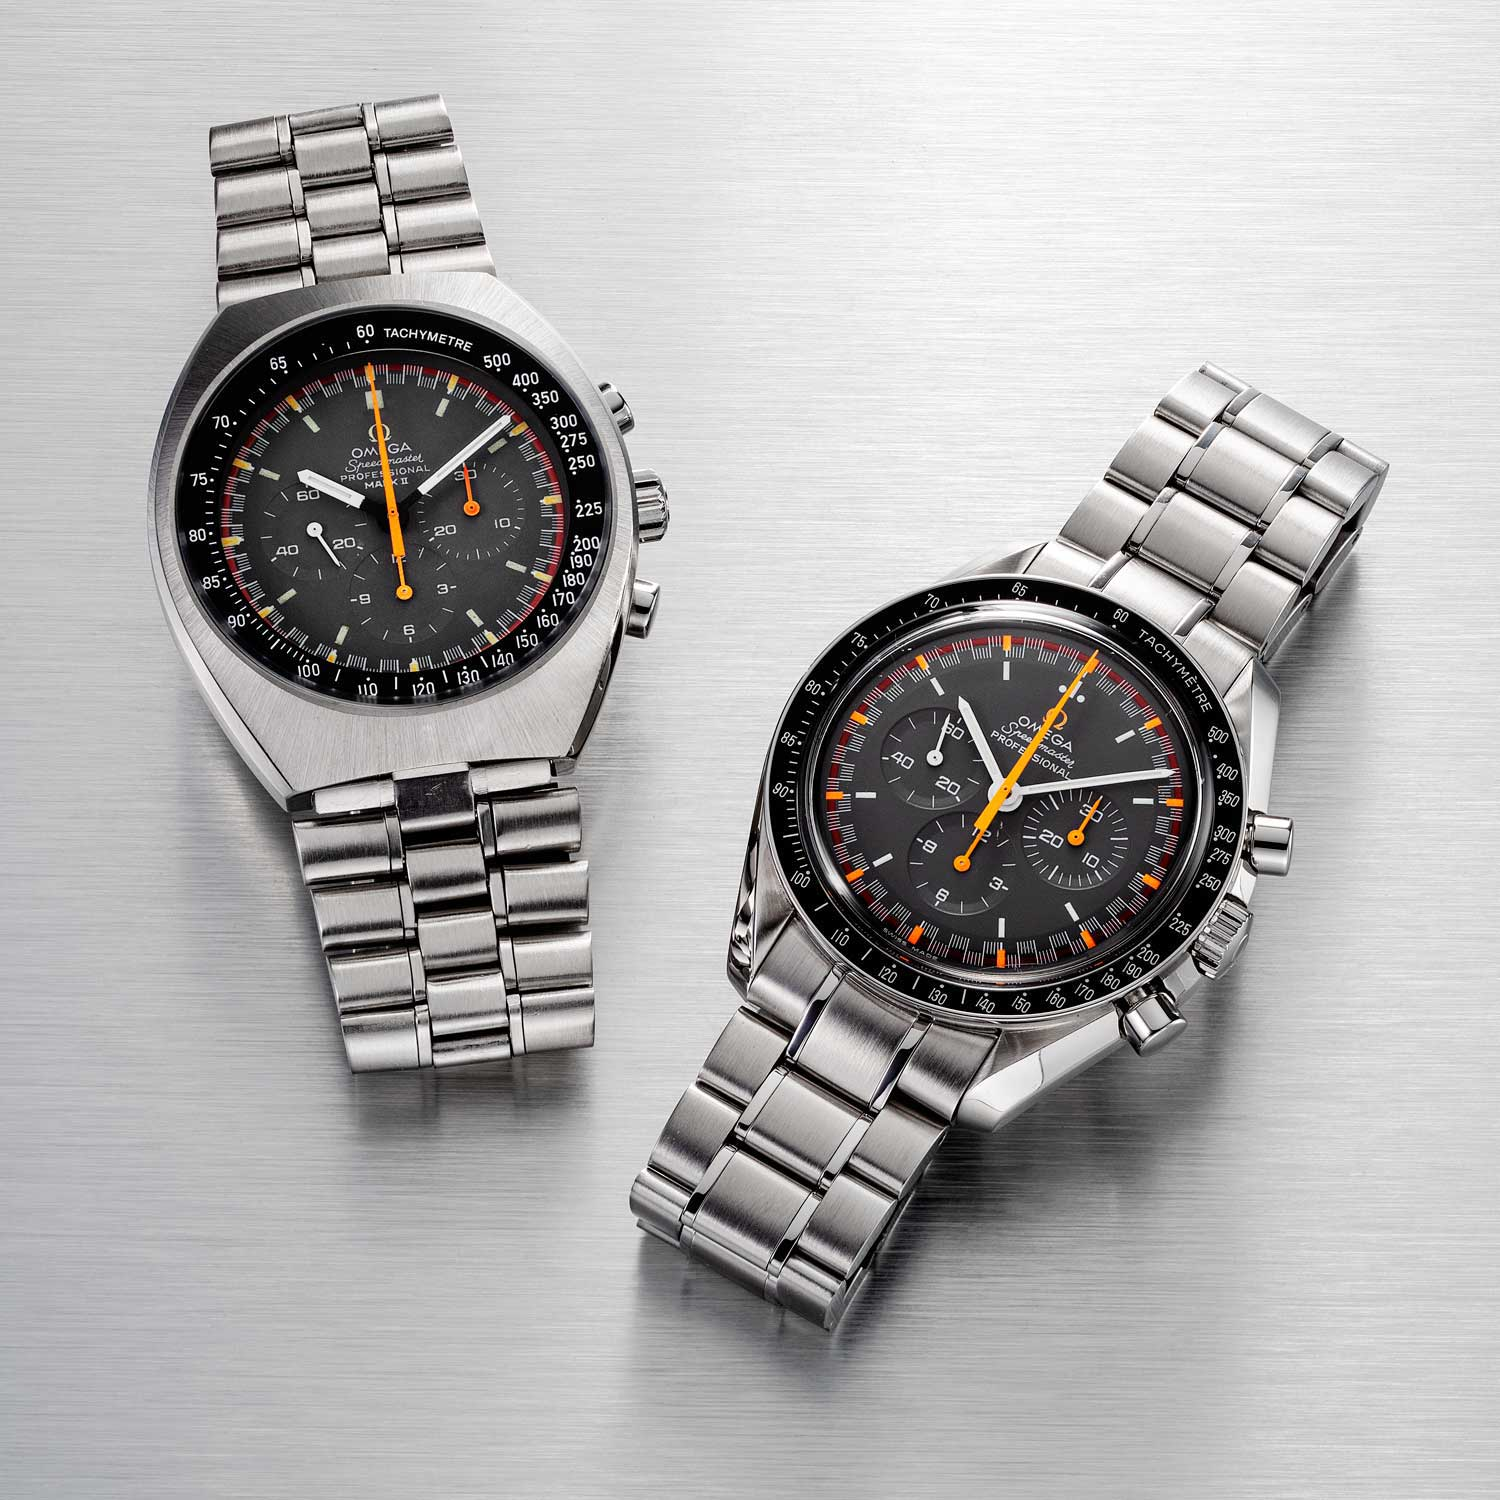 The Omega Speedmaster Mark II and the Limited-Edition Japan Racing Dial (Image: ©Revolution)